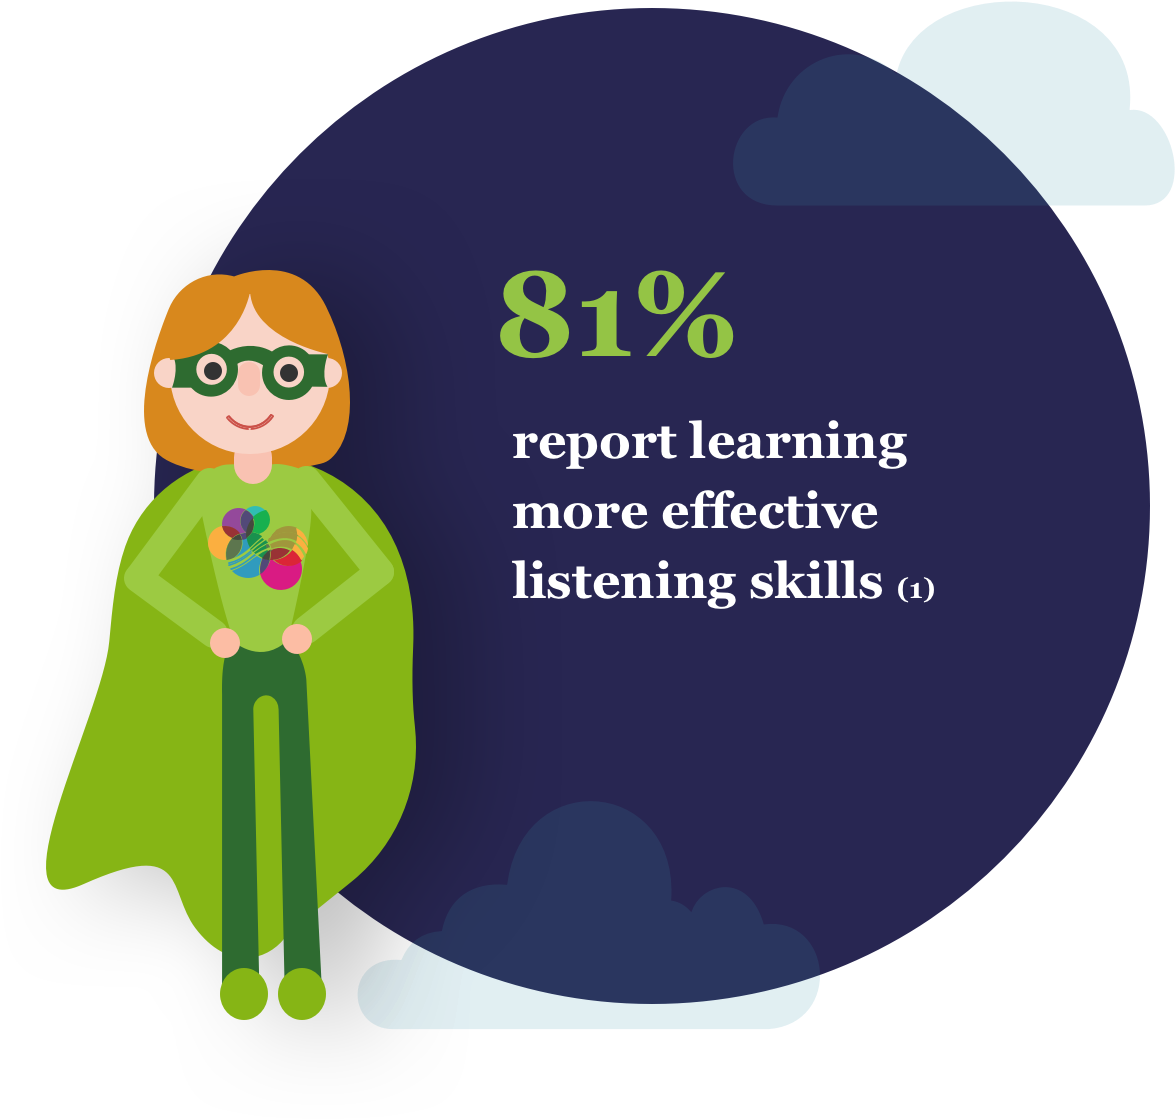 81% report learning more effective listening skills